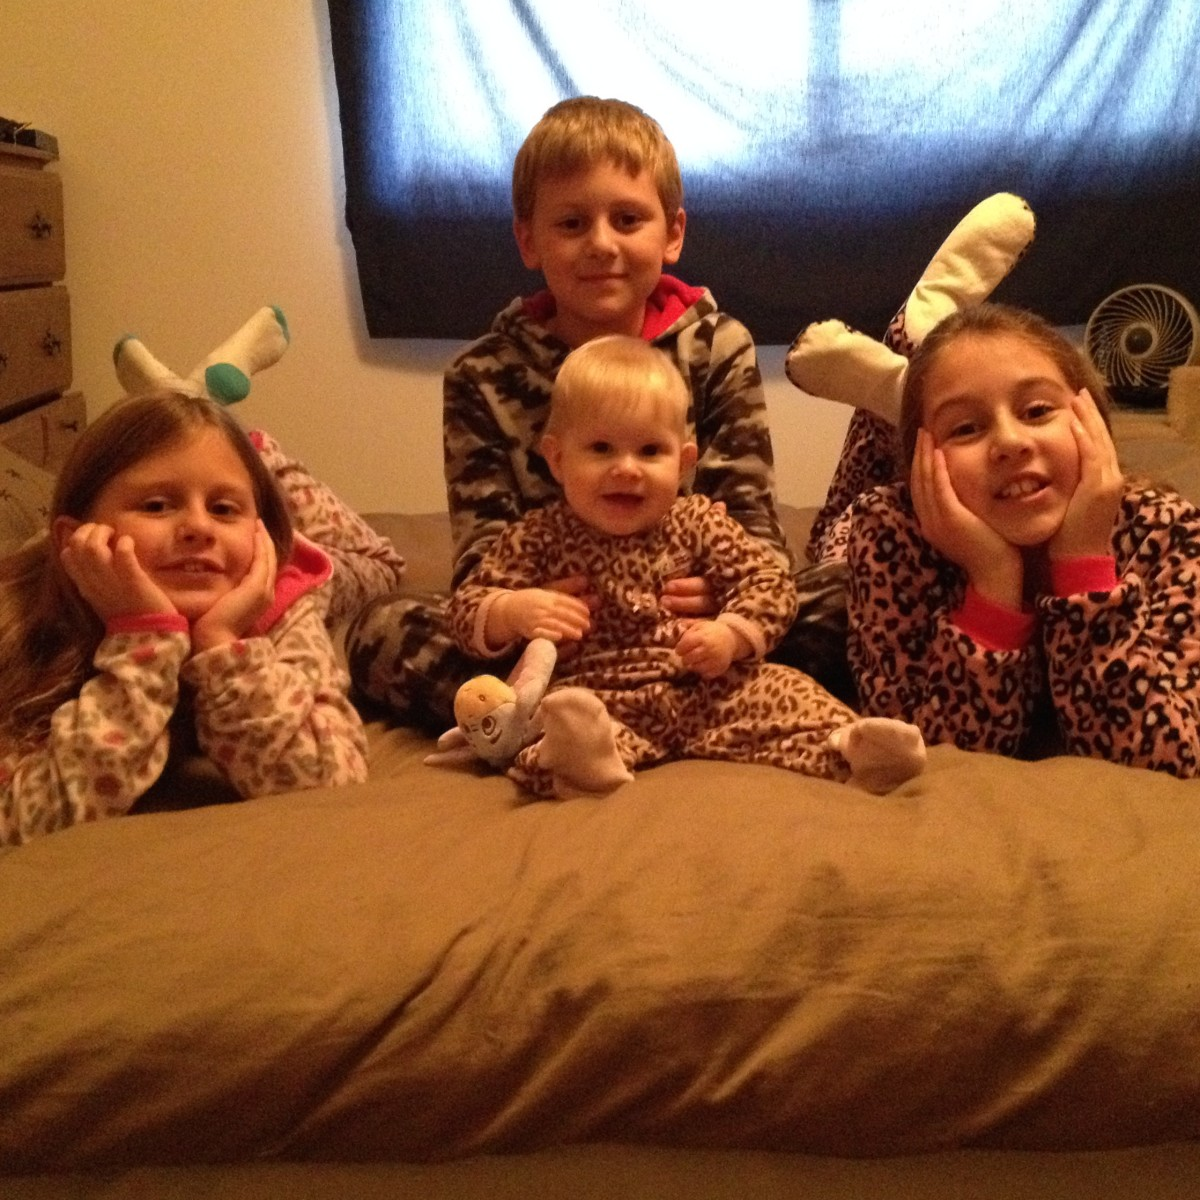 kids-animal-onesie-pjs-pajama-party-fun